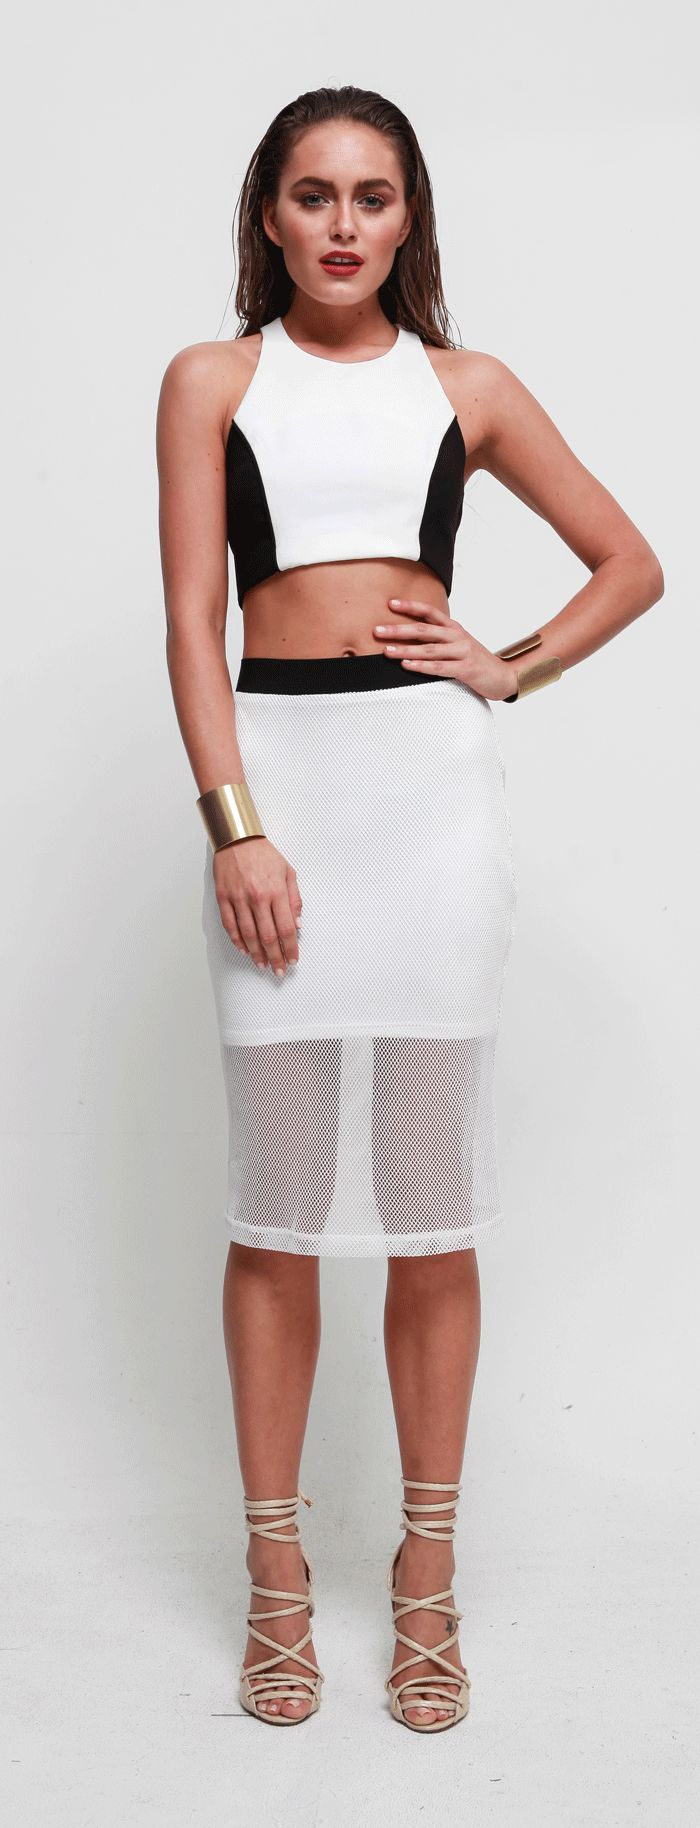 Bebe Sydney - Maze Pencil Skirt Ice